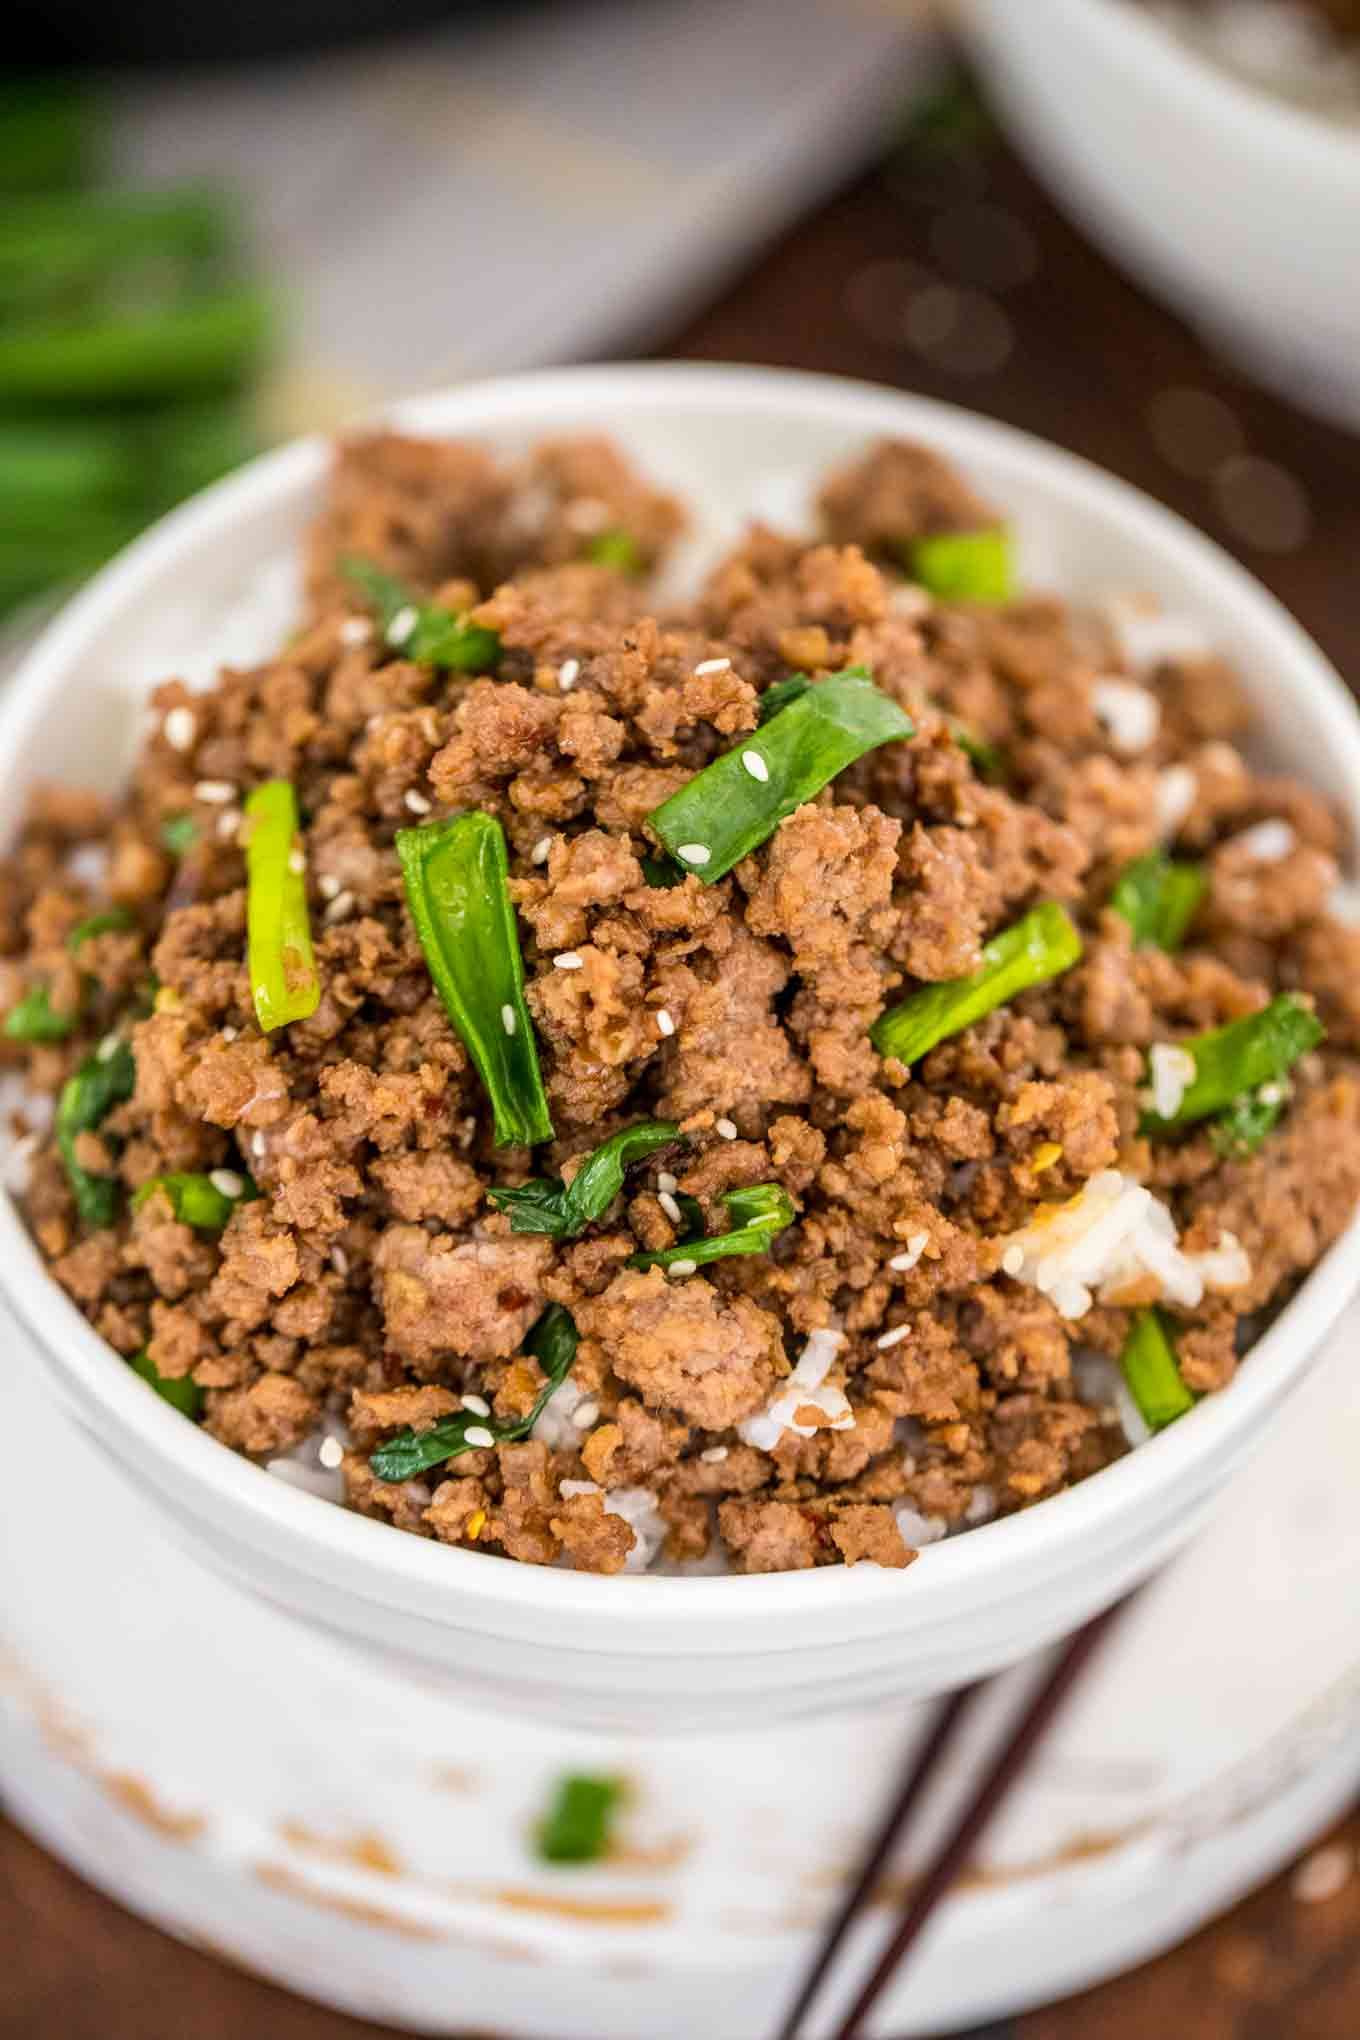 Korean Ground Beef Video Sweet And Savory Meals